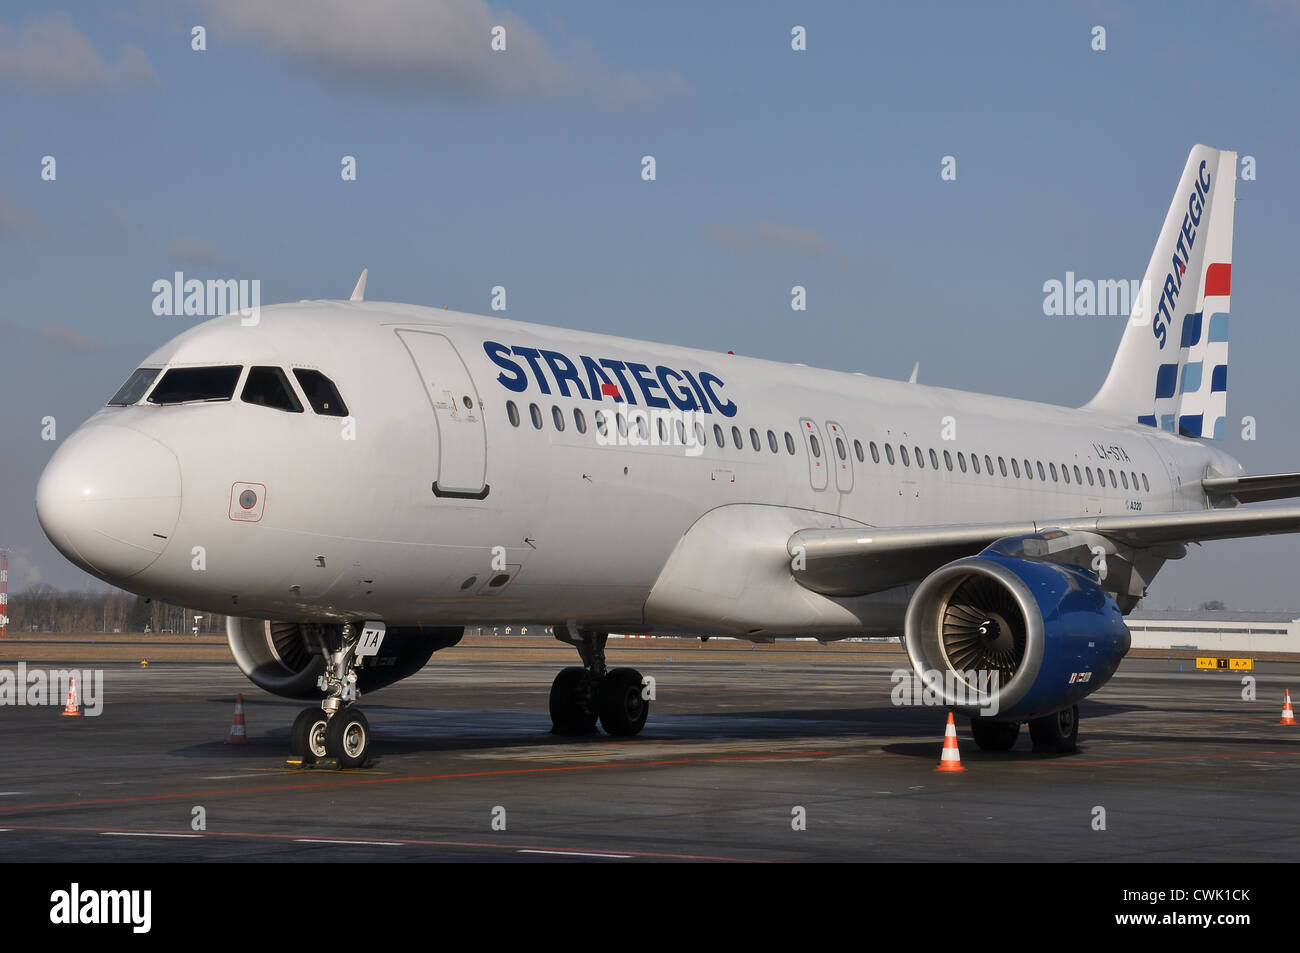 Strategic Airlines Airbus A320 - Stock Image